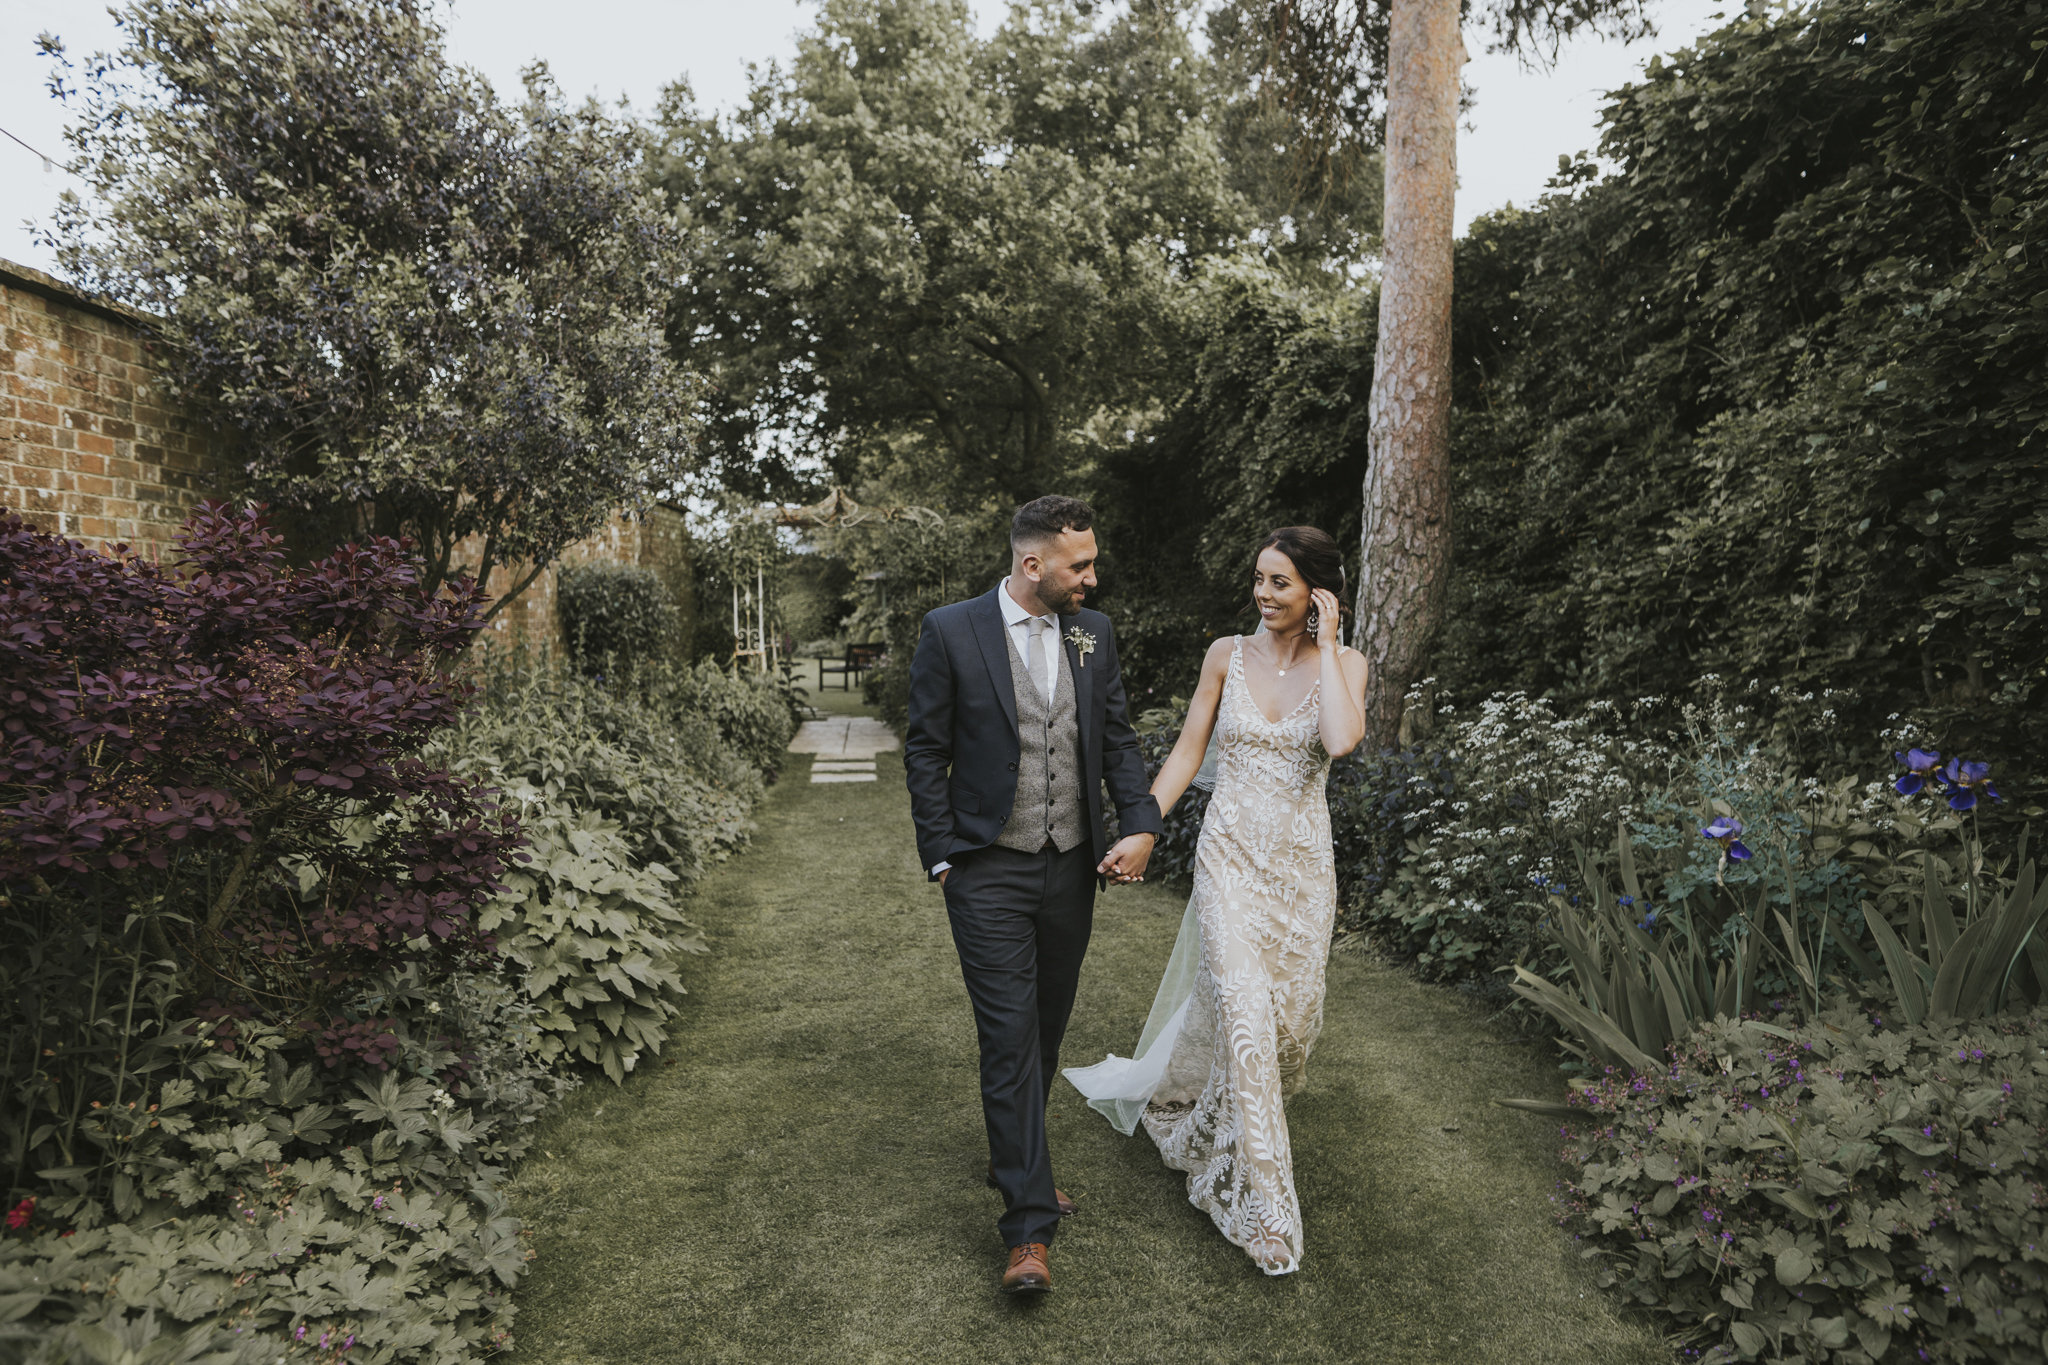 Marie + Marc - preview-29.jpg